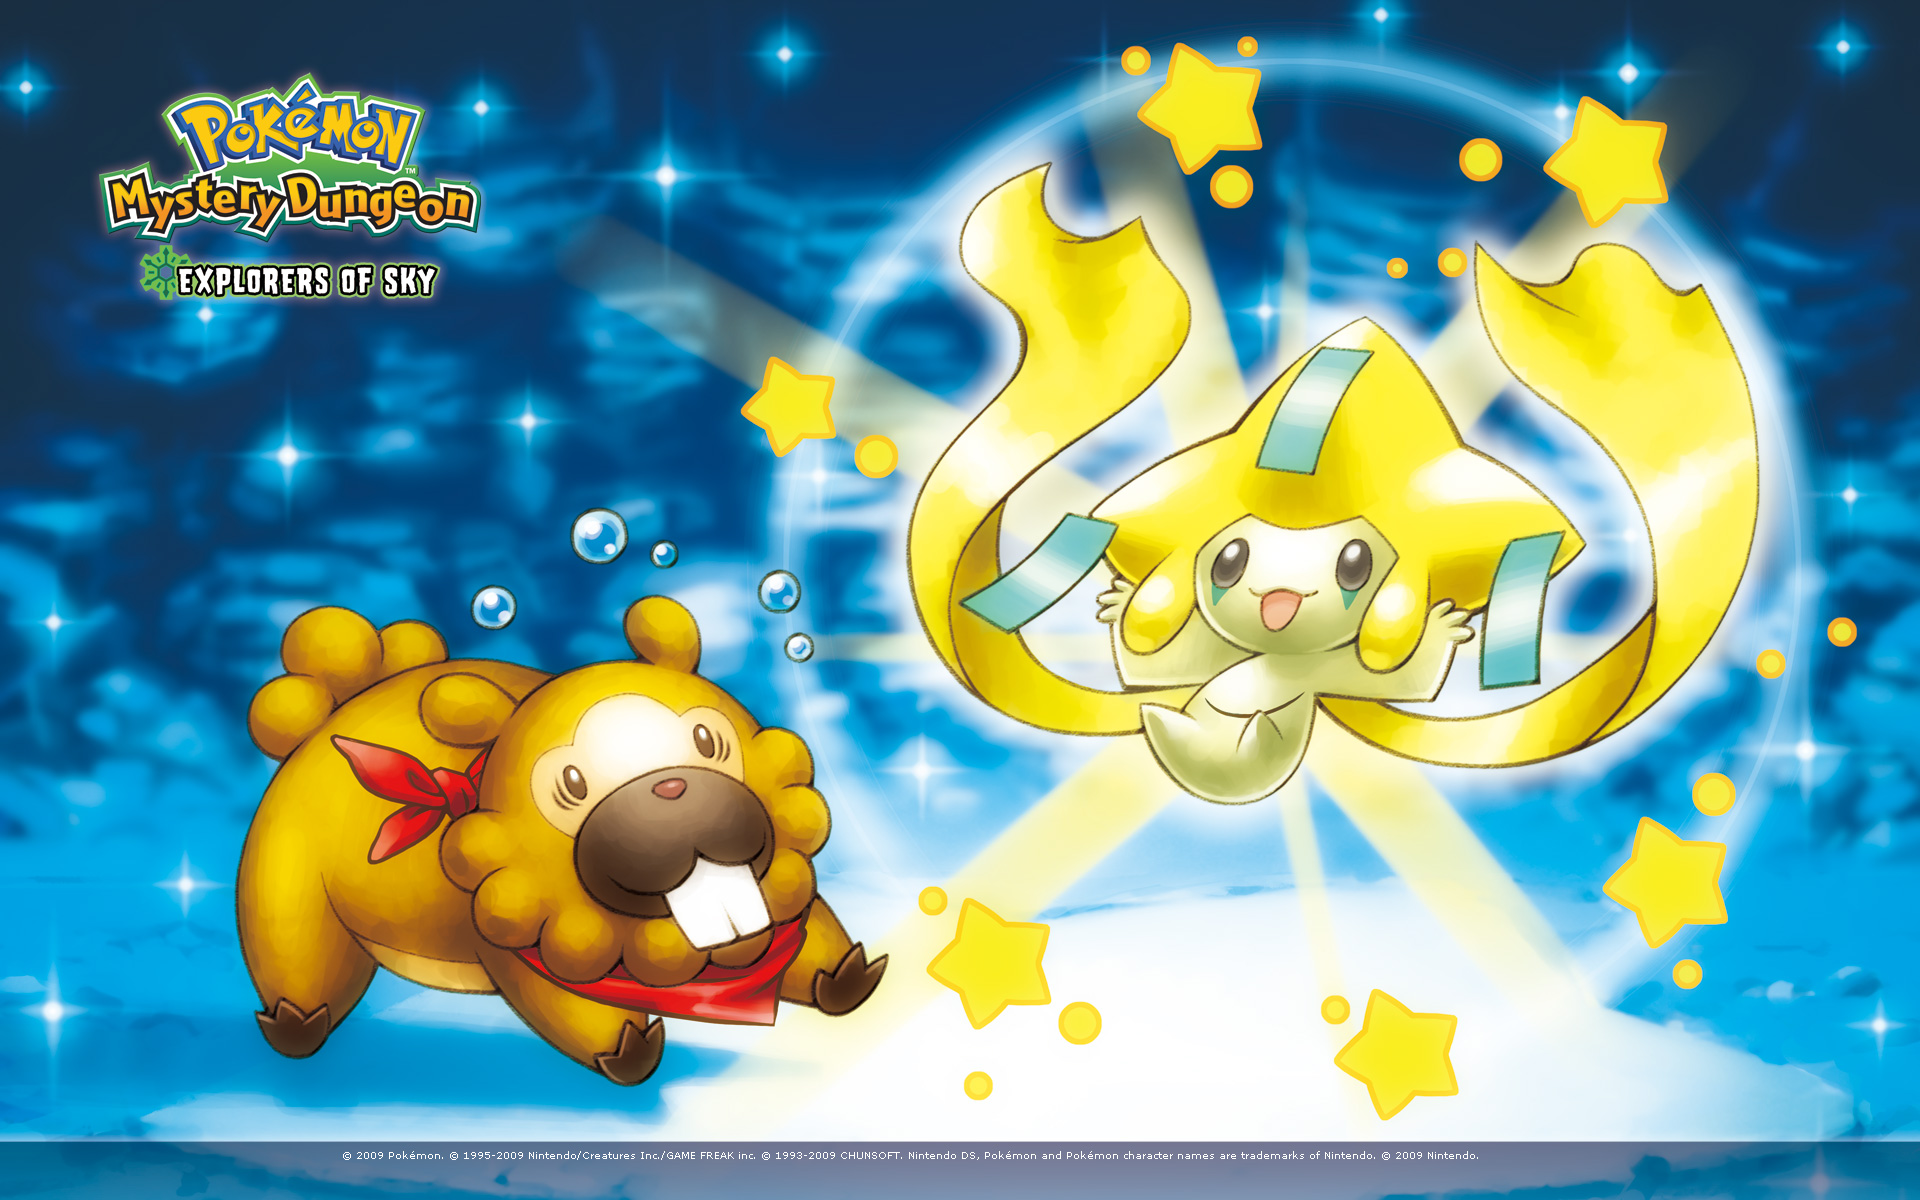 Bidoof And Jirachi Pokemon Mystery Dungeon Explorers Of Sky